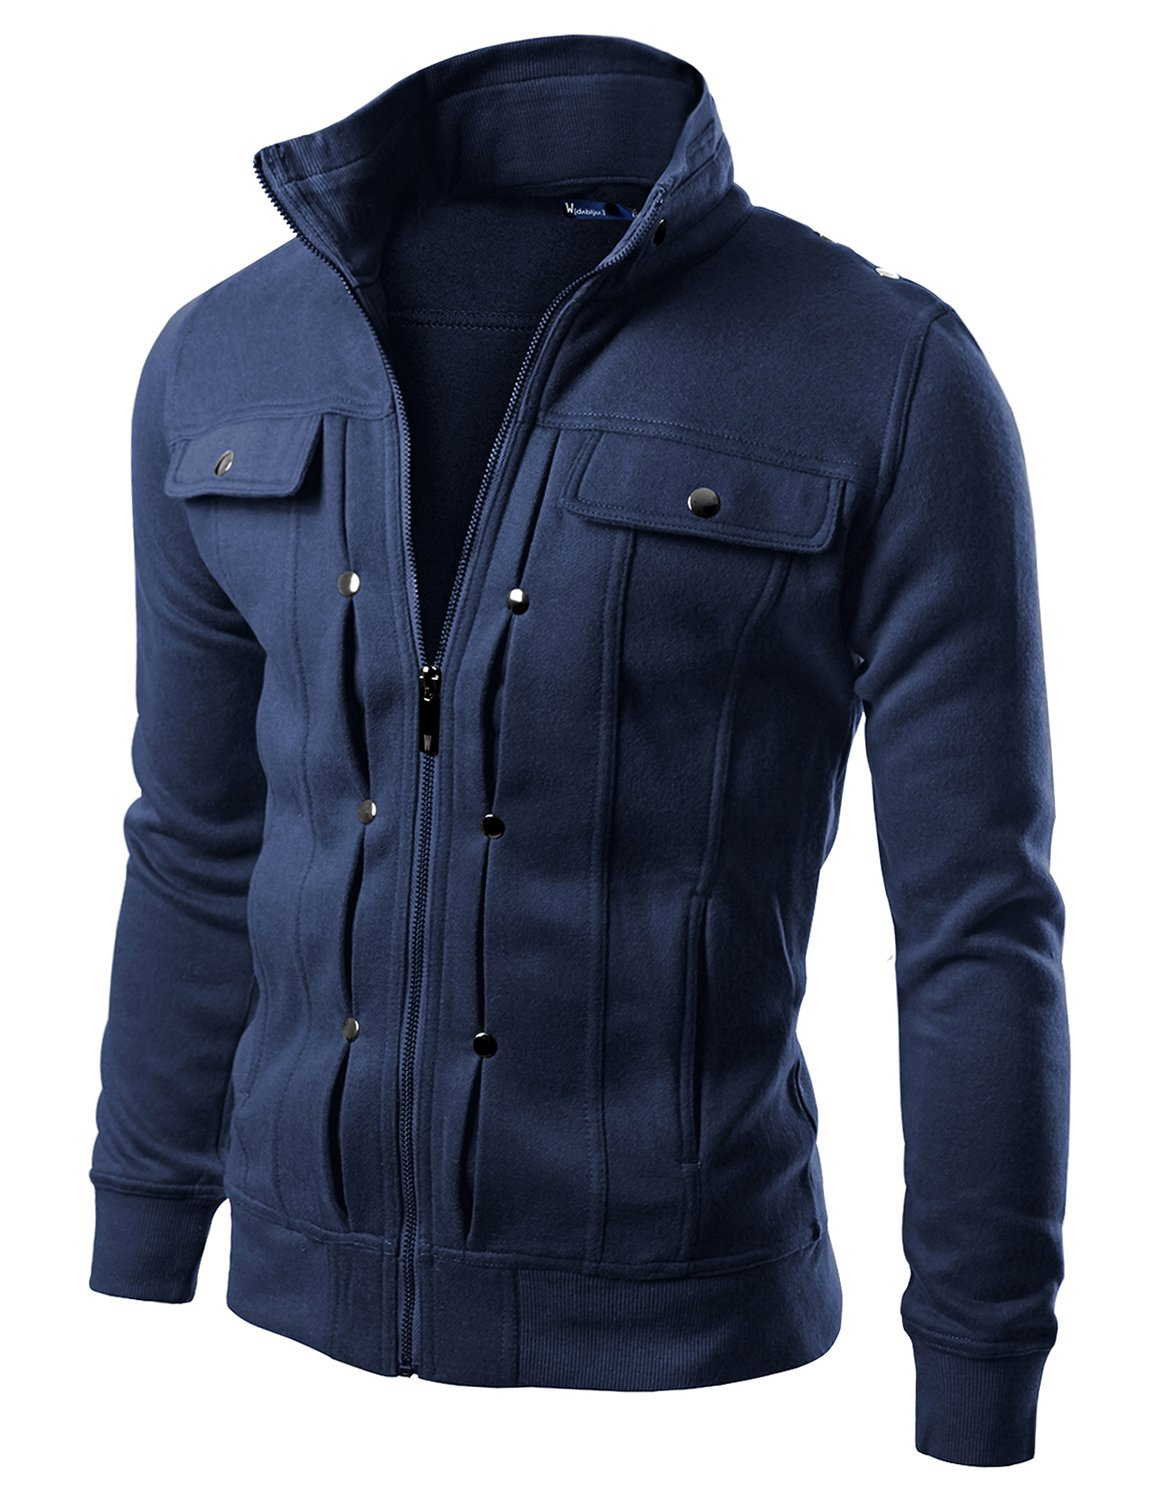 Doublju Men Comfortable Slim Fit Hight Neck Zip Up Jacket Navy M